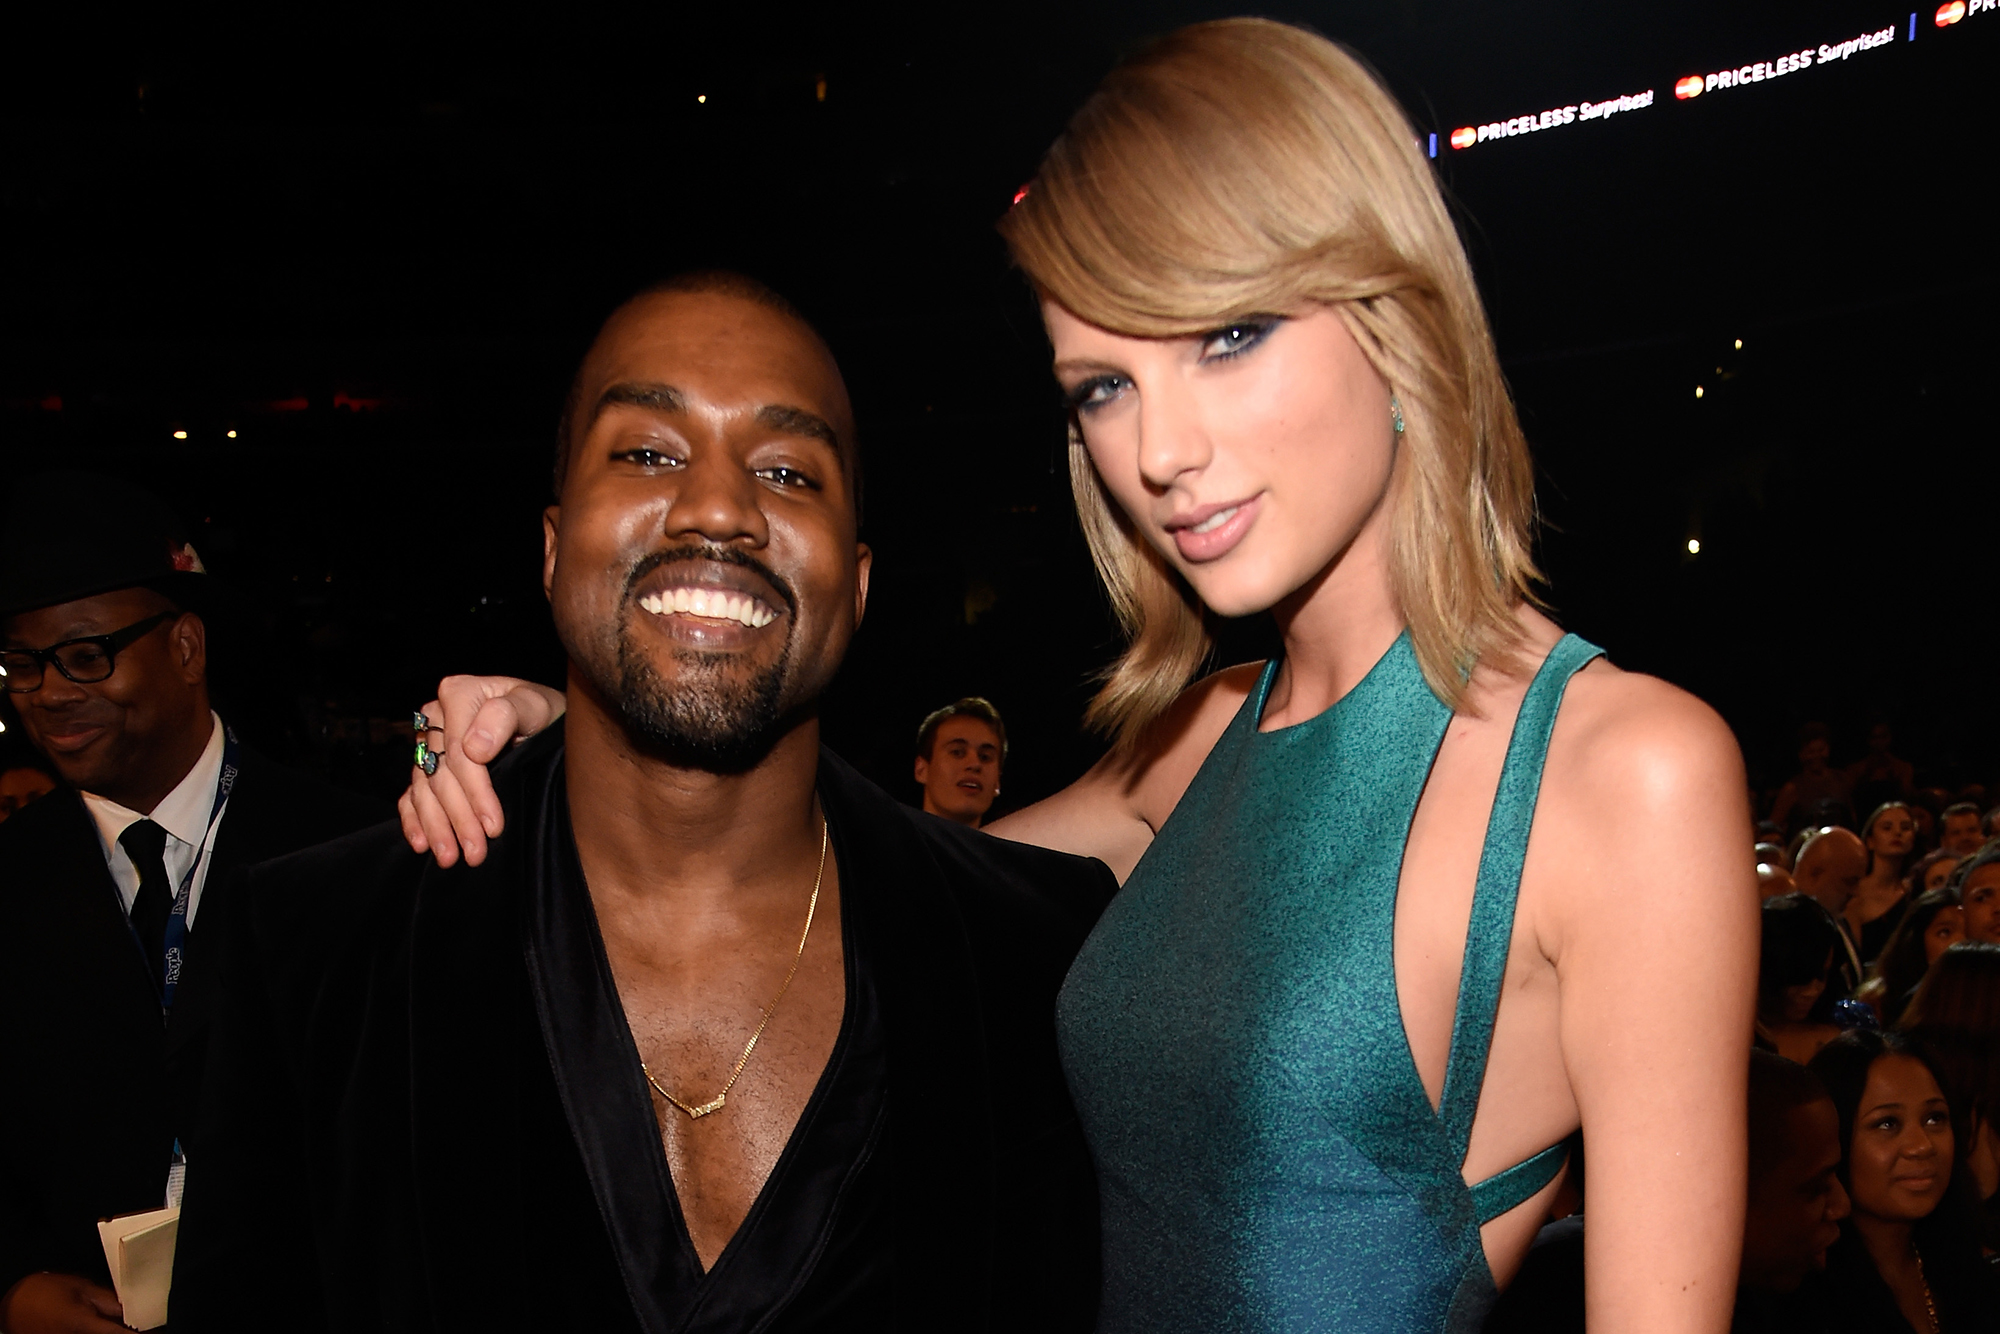 Taylor Swift Fans Call Kanye West A Liar After New Emerges